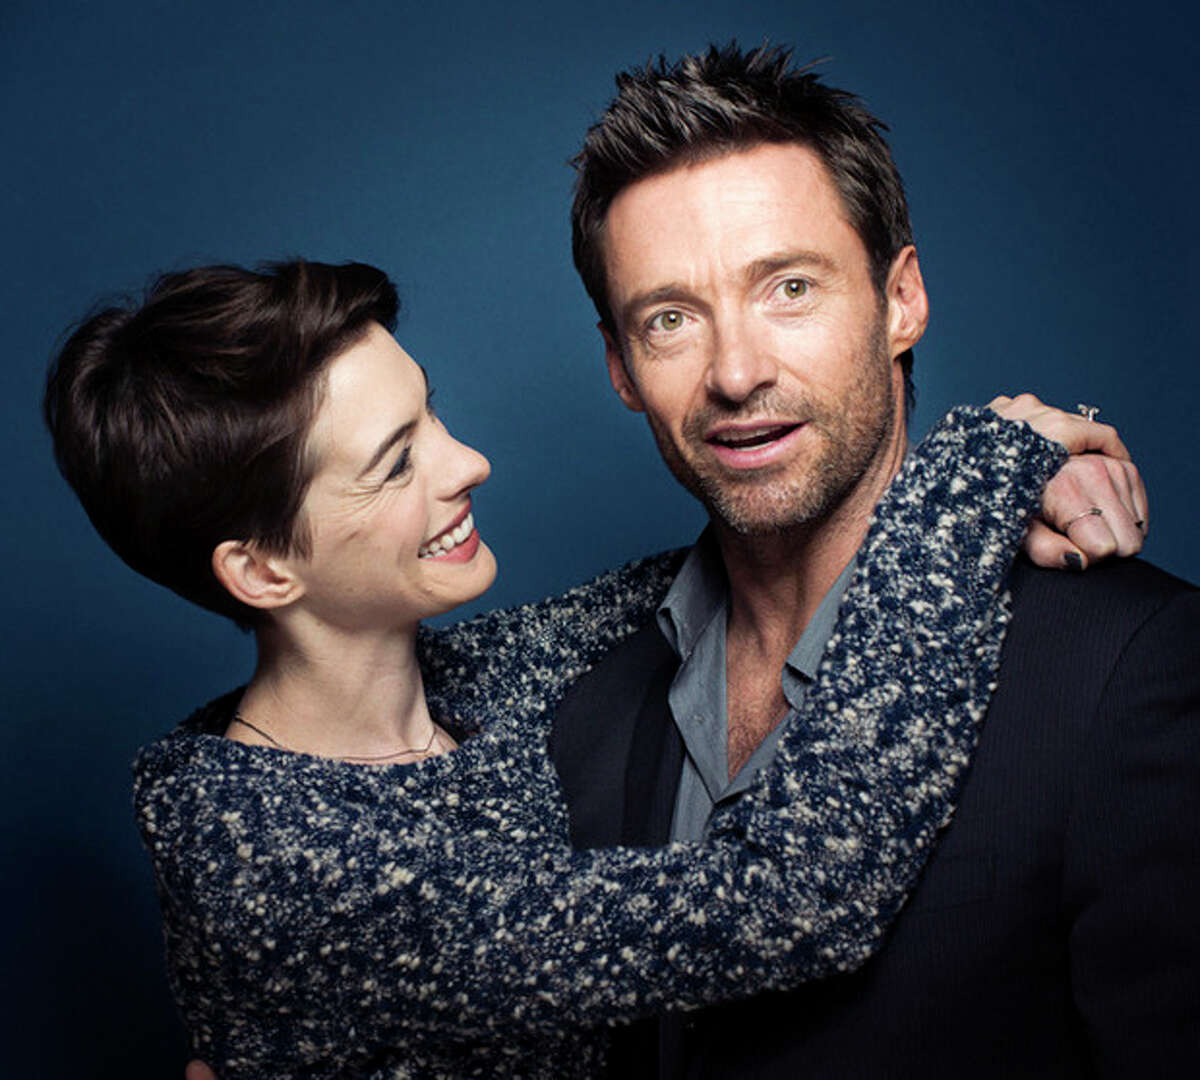 This Dec. 2, 2012 photo shows actors Anne Hathaway, left, and Hugh Jackman in New York. Hathaway portrays Fantine and Jackman portrays Jean Valjean in the film adaptation of the Victor Hugo novel,